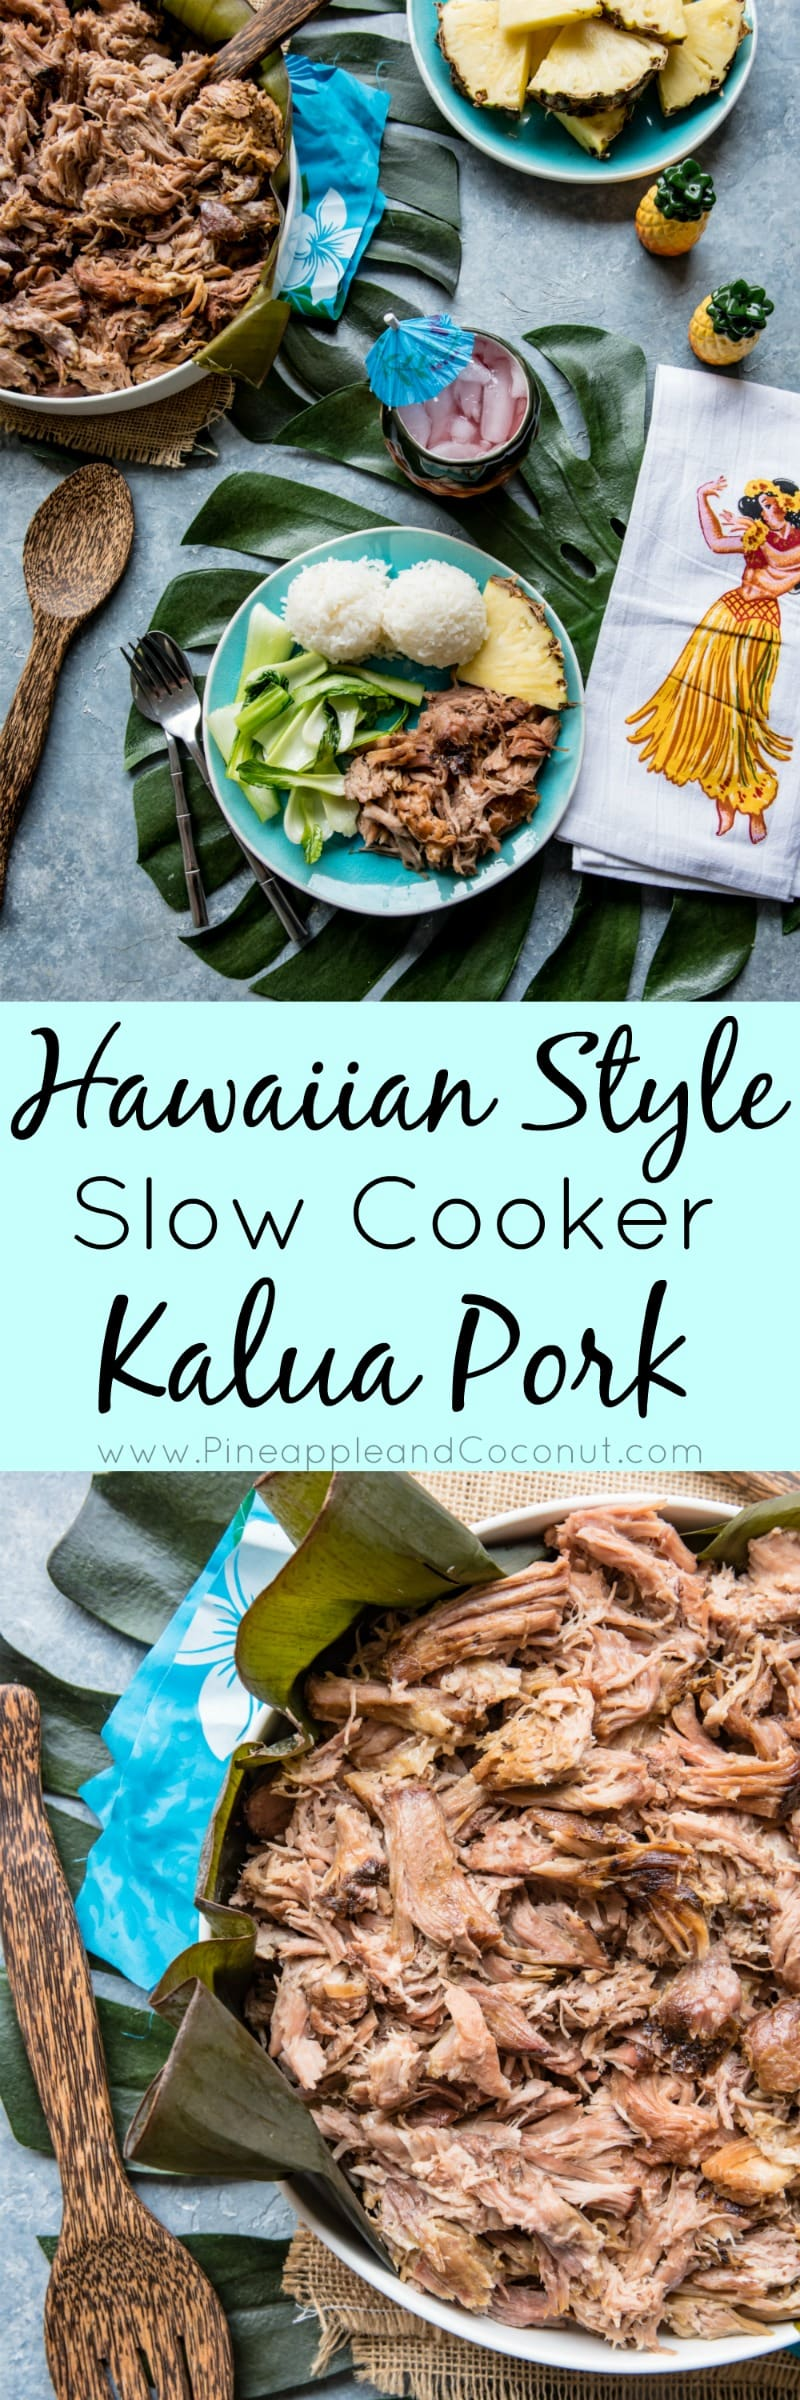 Hawaiian Style Slow Cooker Kalua Pork www.pineappleandcoconut.com